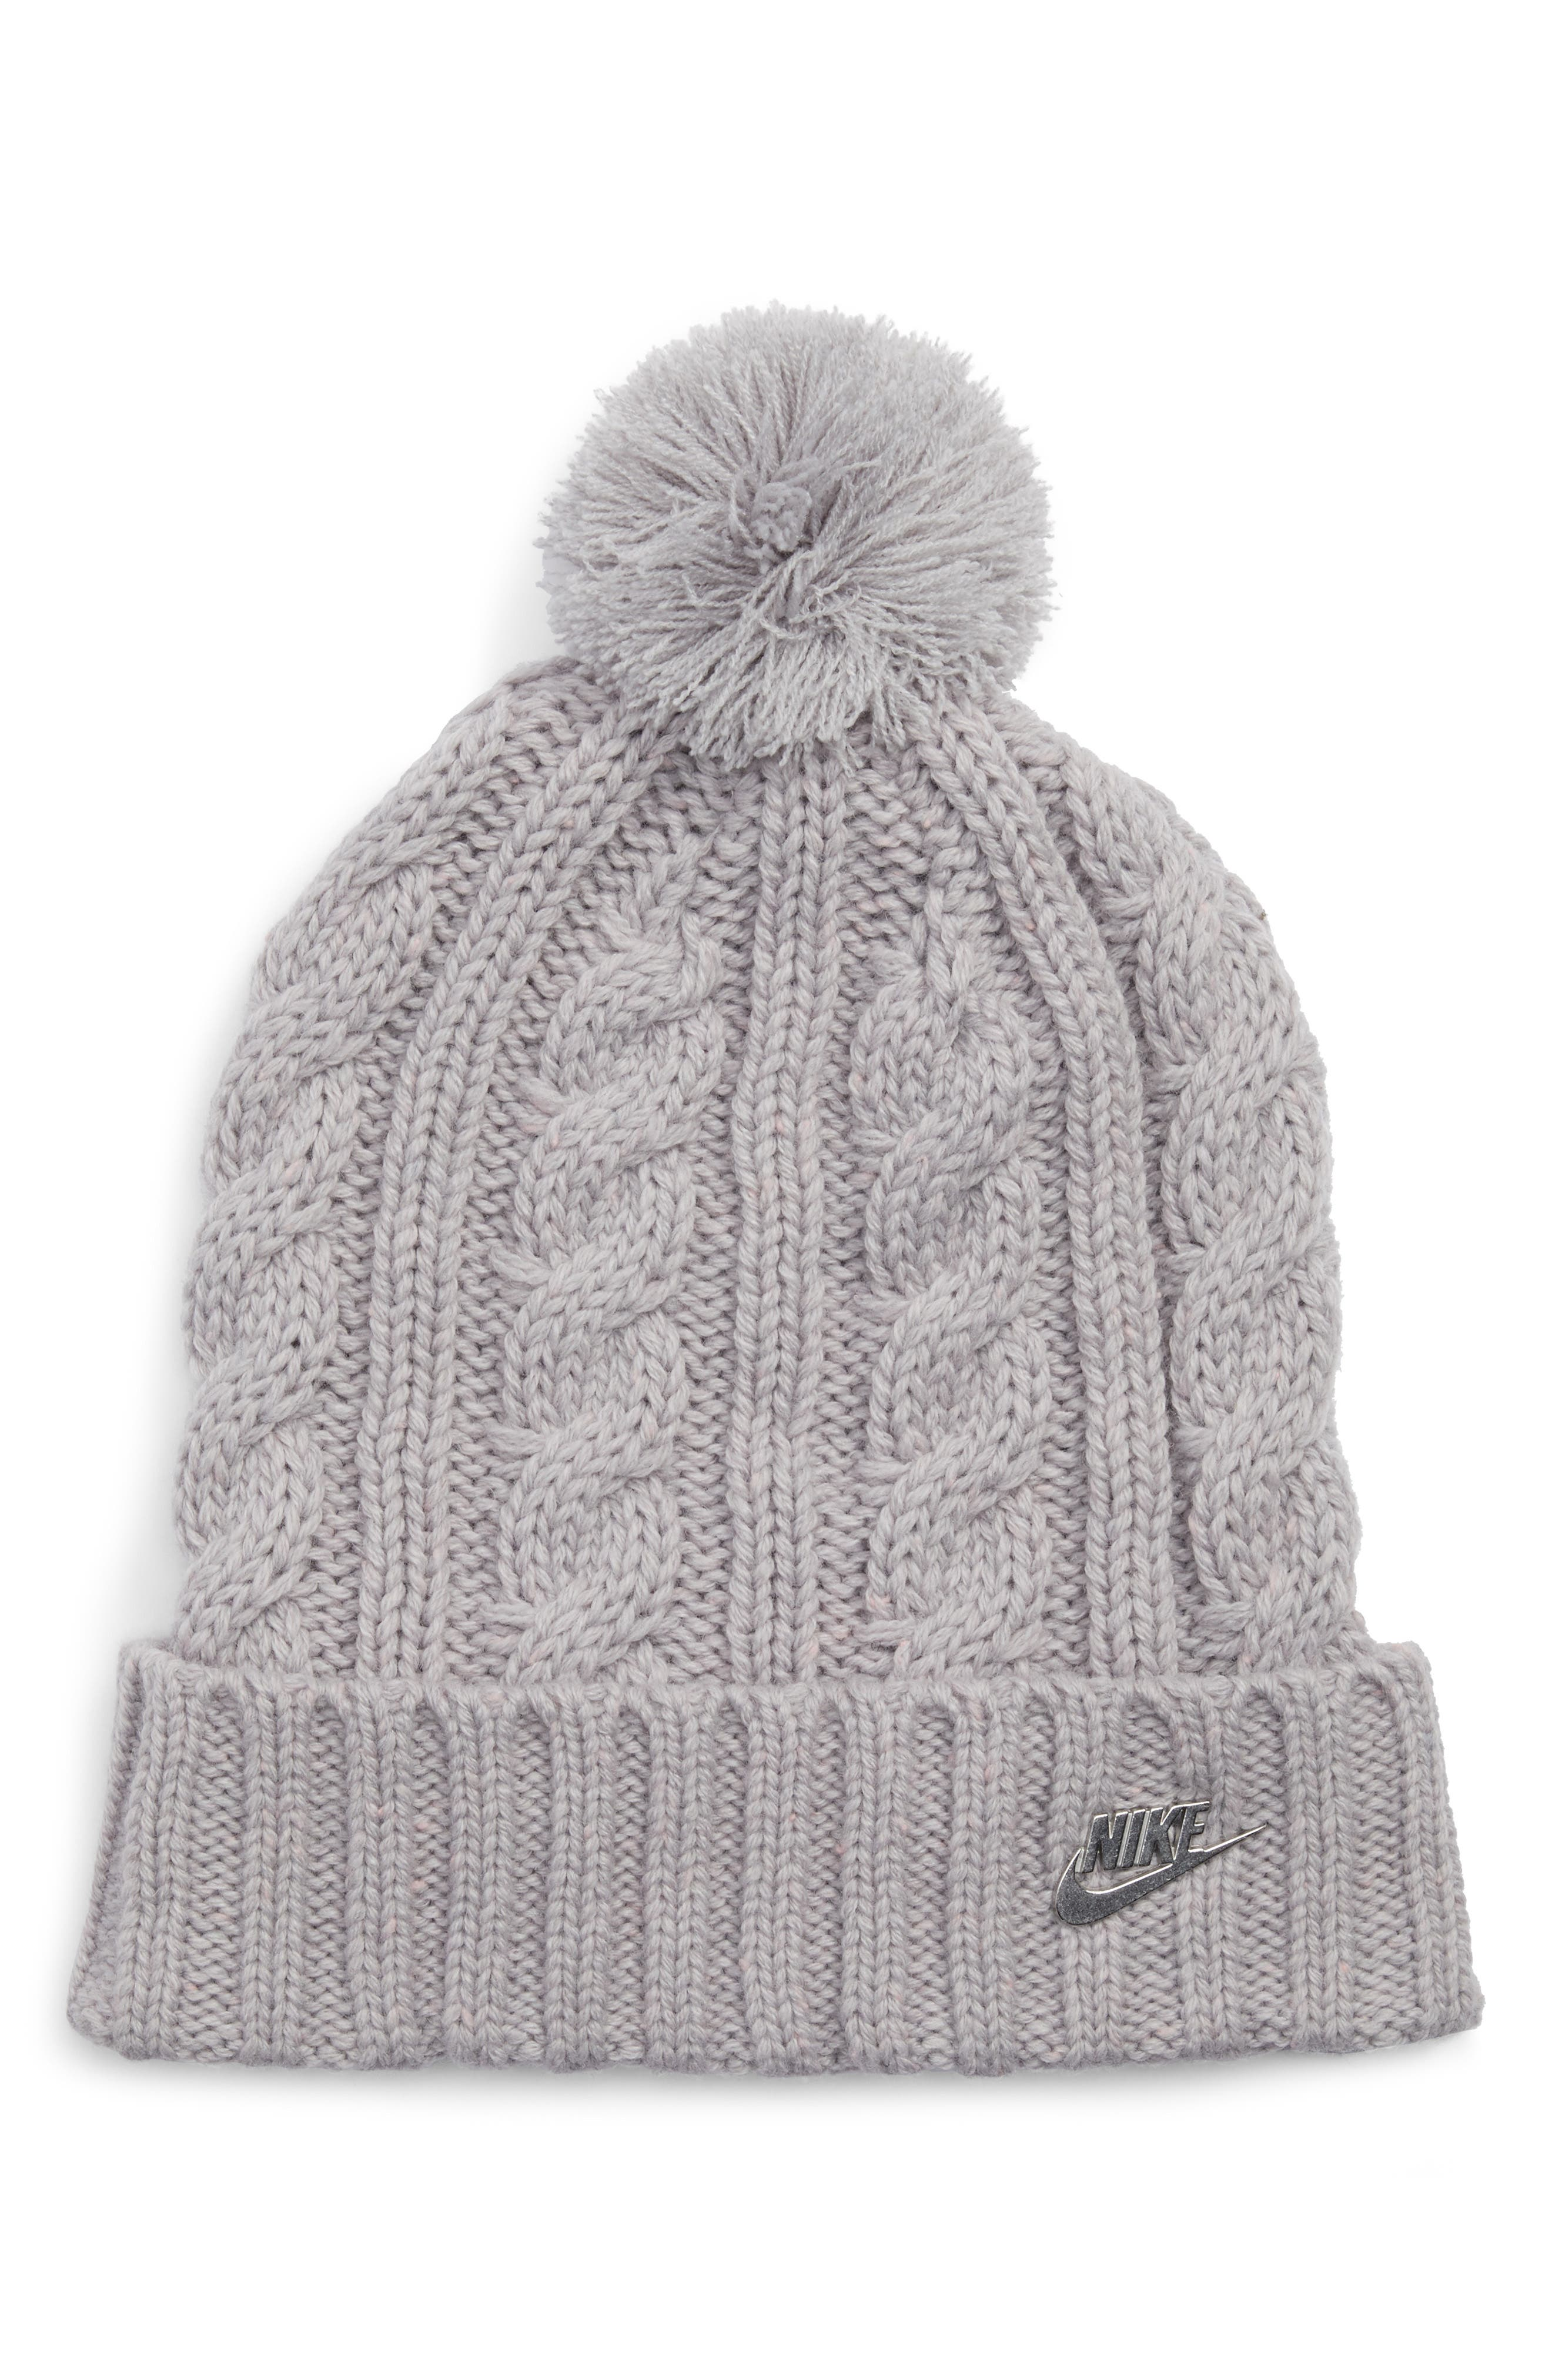 Sportswear Beanie with Removable Pom,                             Main thumbnail 1, color,                             027